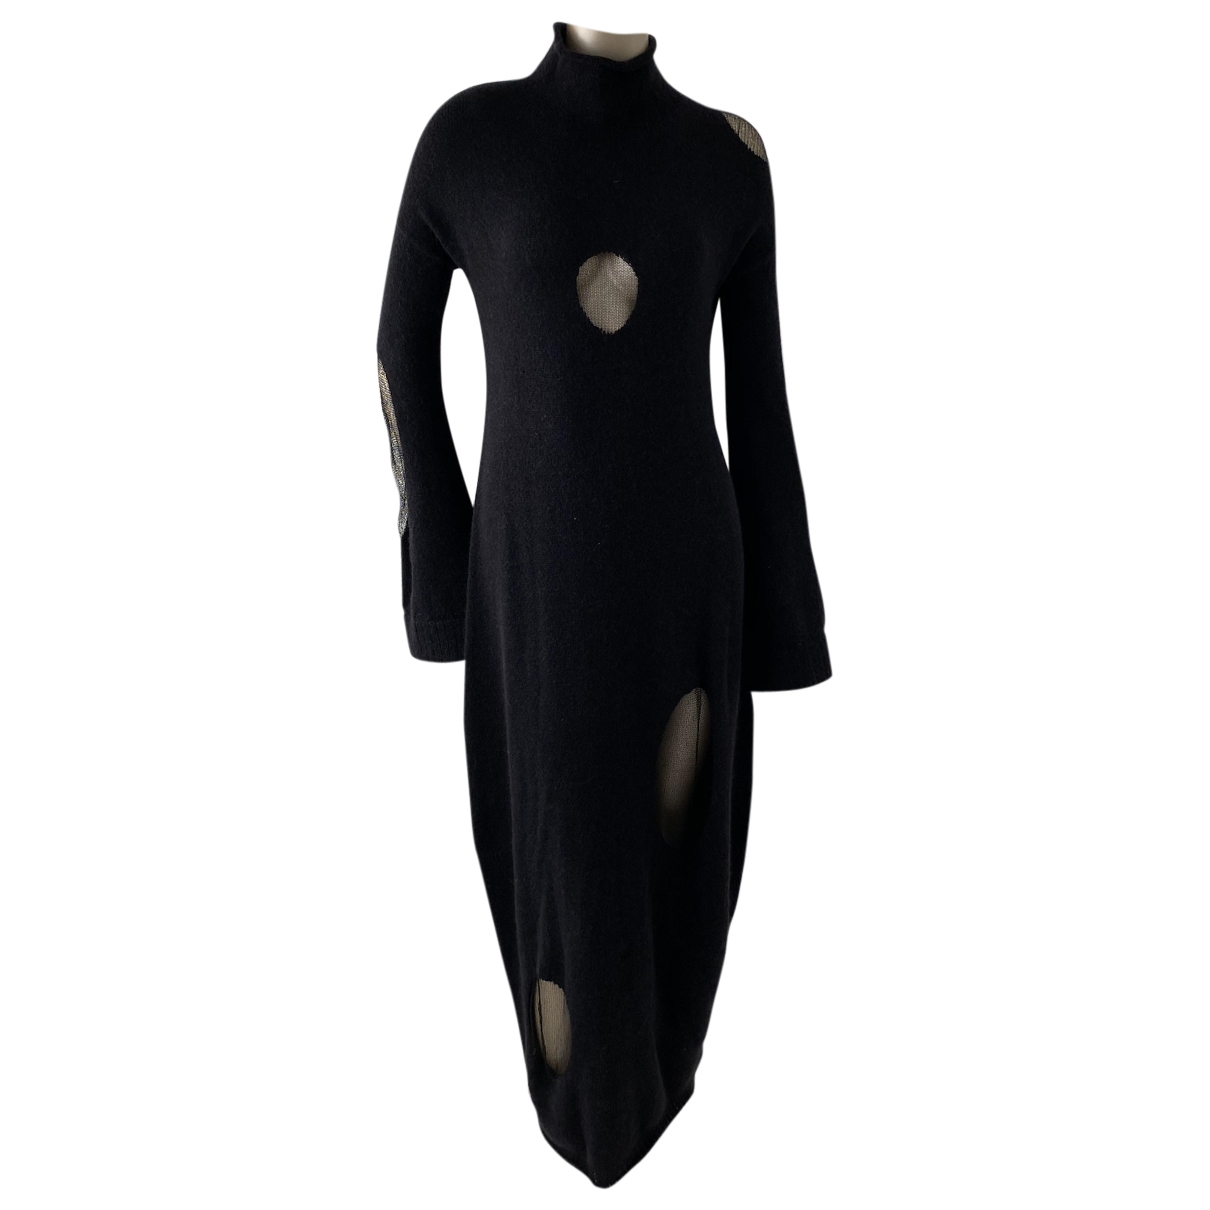 Krizia \N Black Wool dress for Women 40 IT